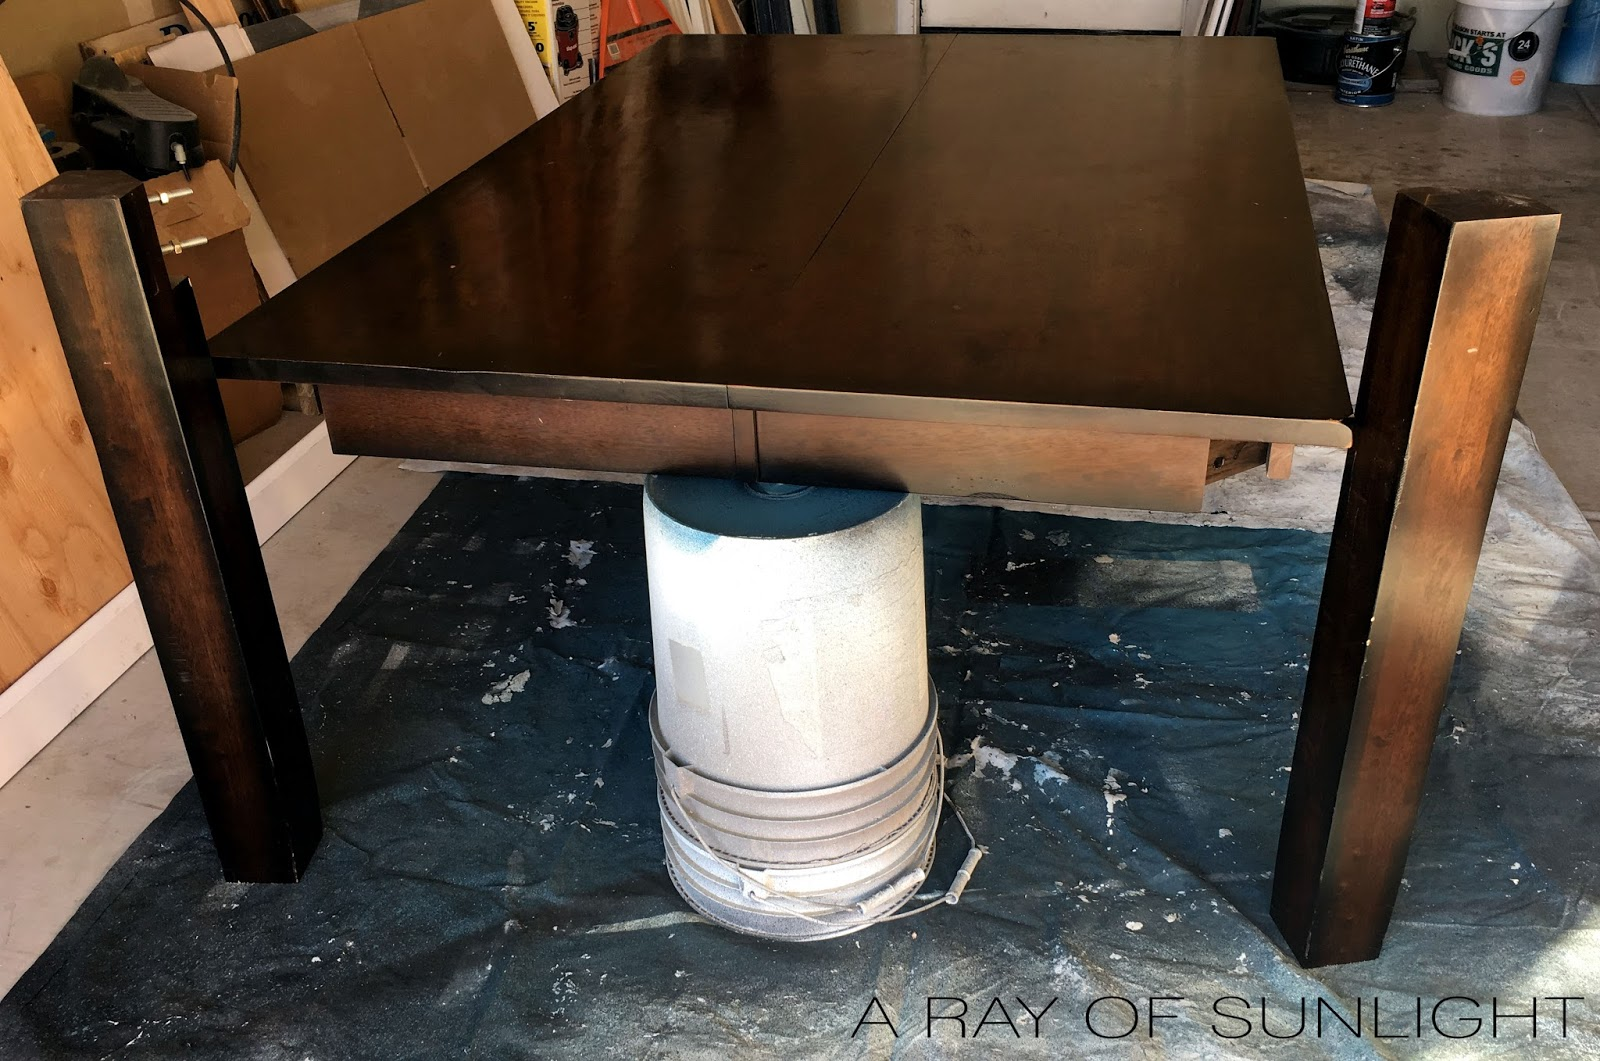 How to strip or remove an old stained finish from wood furniture. We found this thrifted dining table online for cheap, and removed the old stained finish to create a weathered wood rustic finish. You can do this with any type of wood furniture like a dresser, table, vanity or buffet to get a farmhouse style feel.